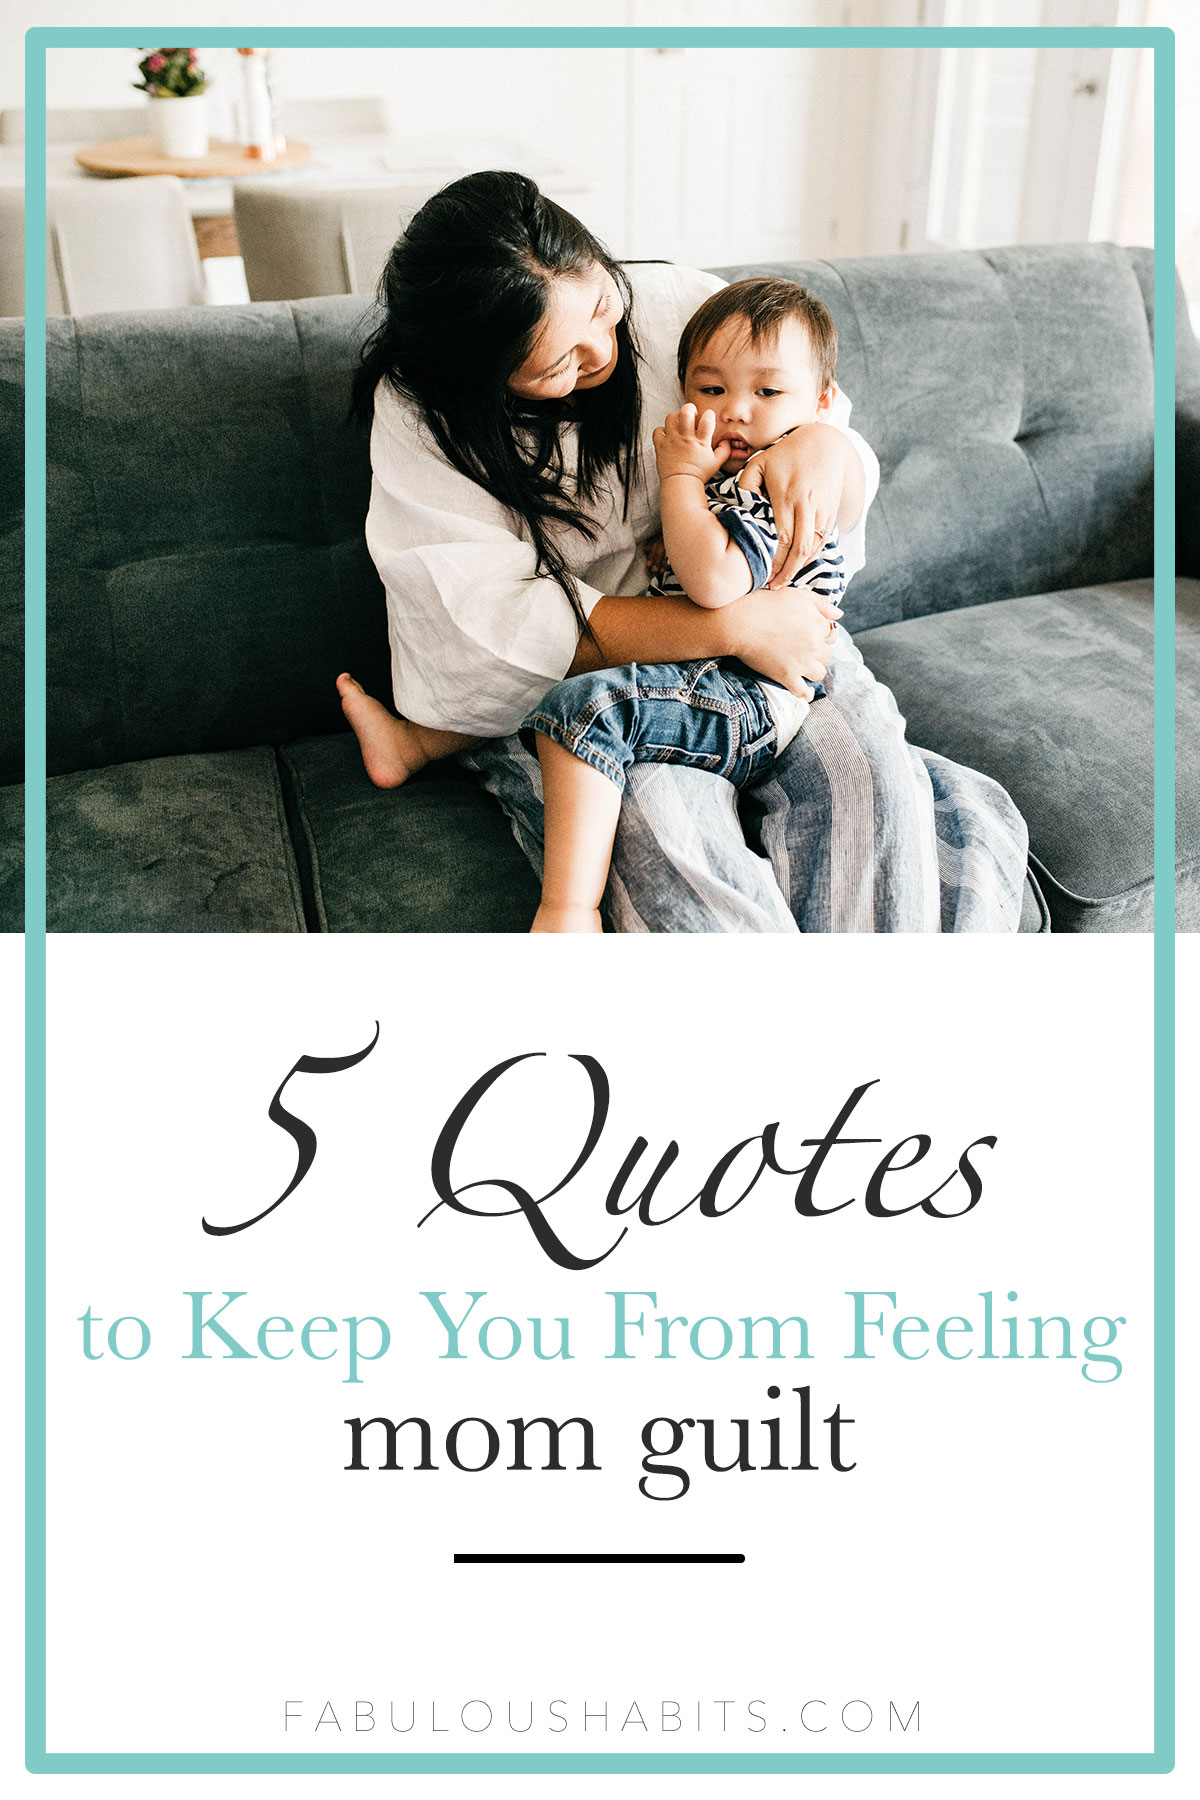 When the feelings of mom guilt are overwhelming, here are a few quotes to remind you, mama, how special and amazing you are. Let's stand together!